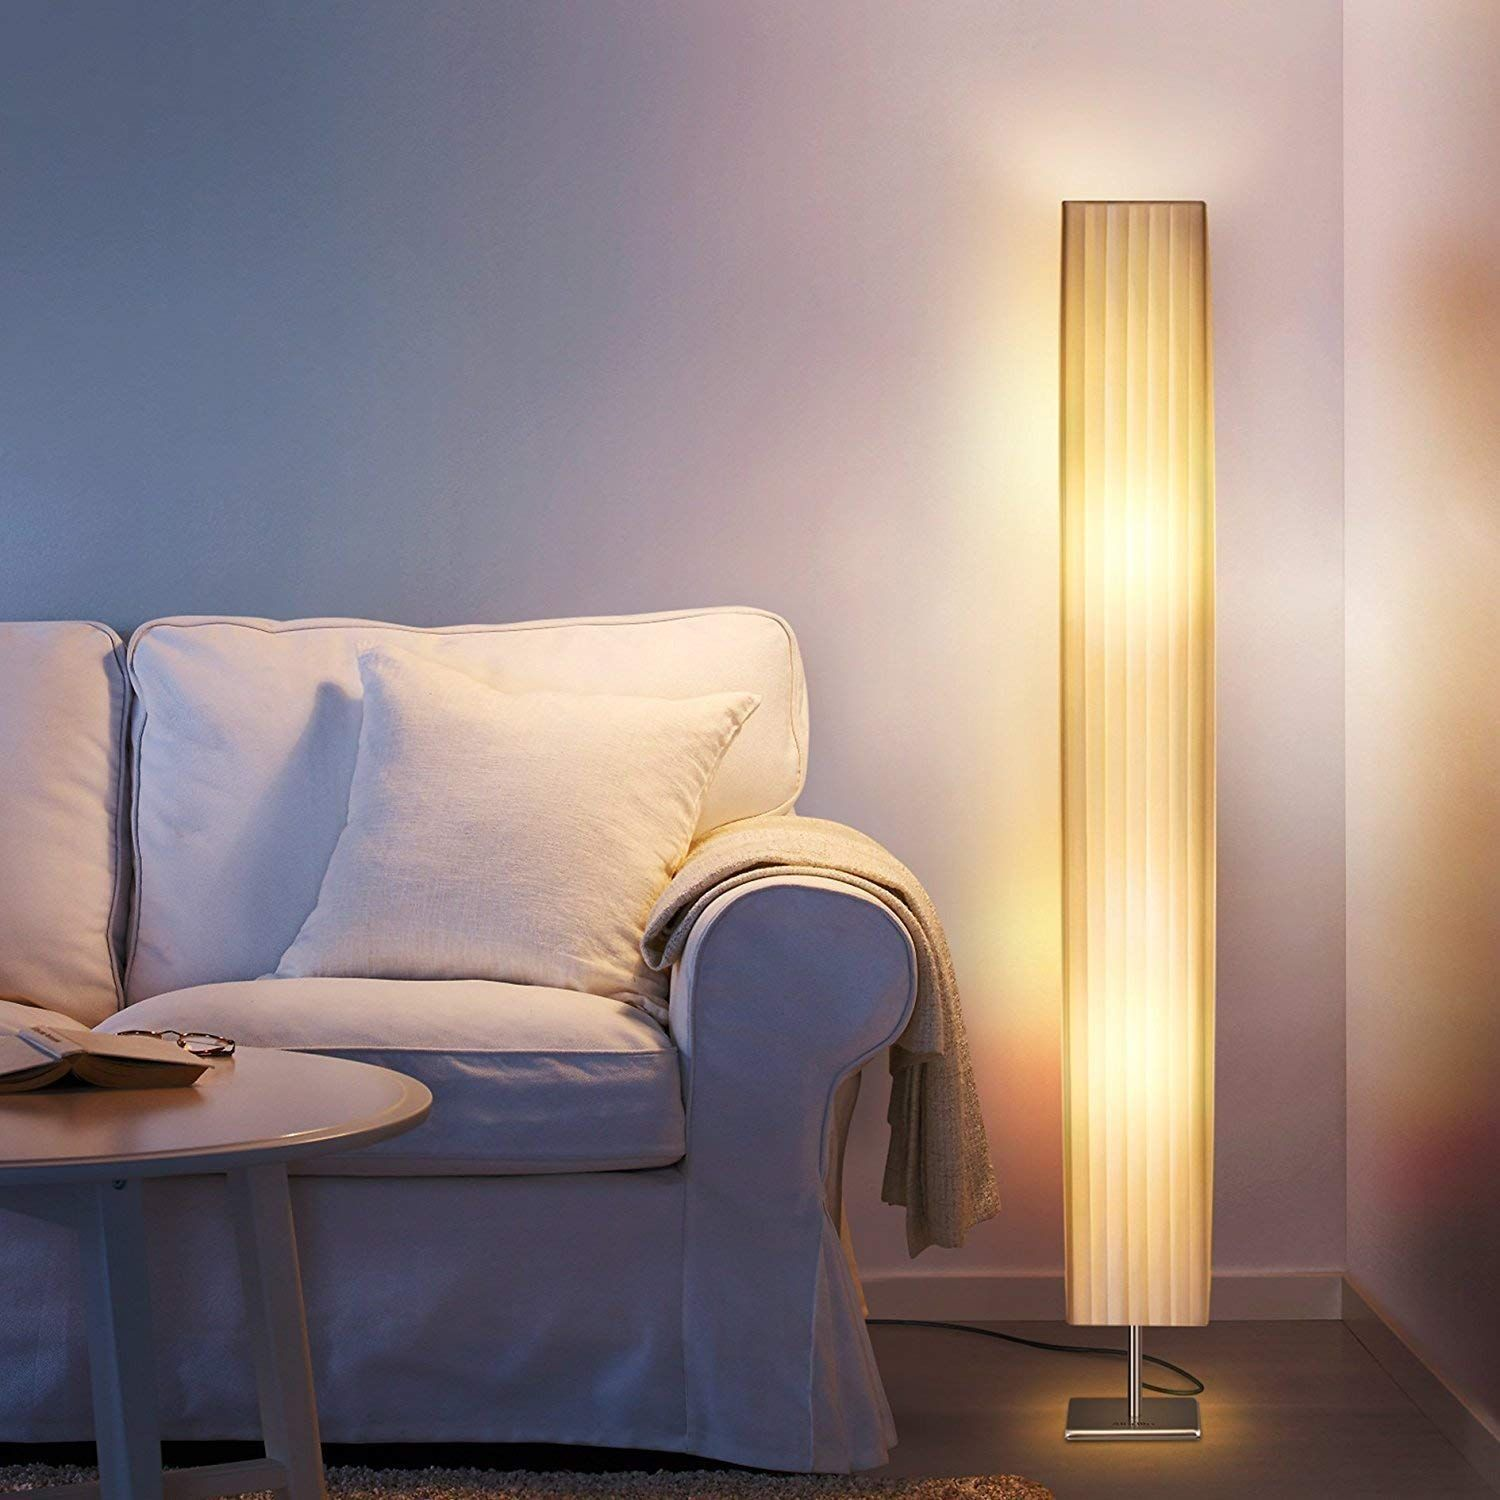 Fabric Floor Lamp, Modern Asian Style Standing Lamps with